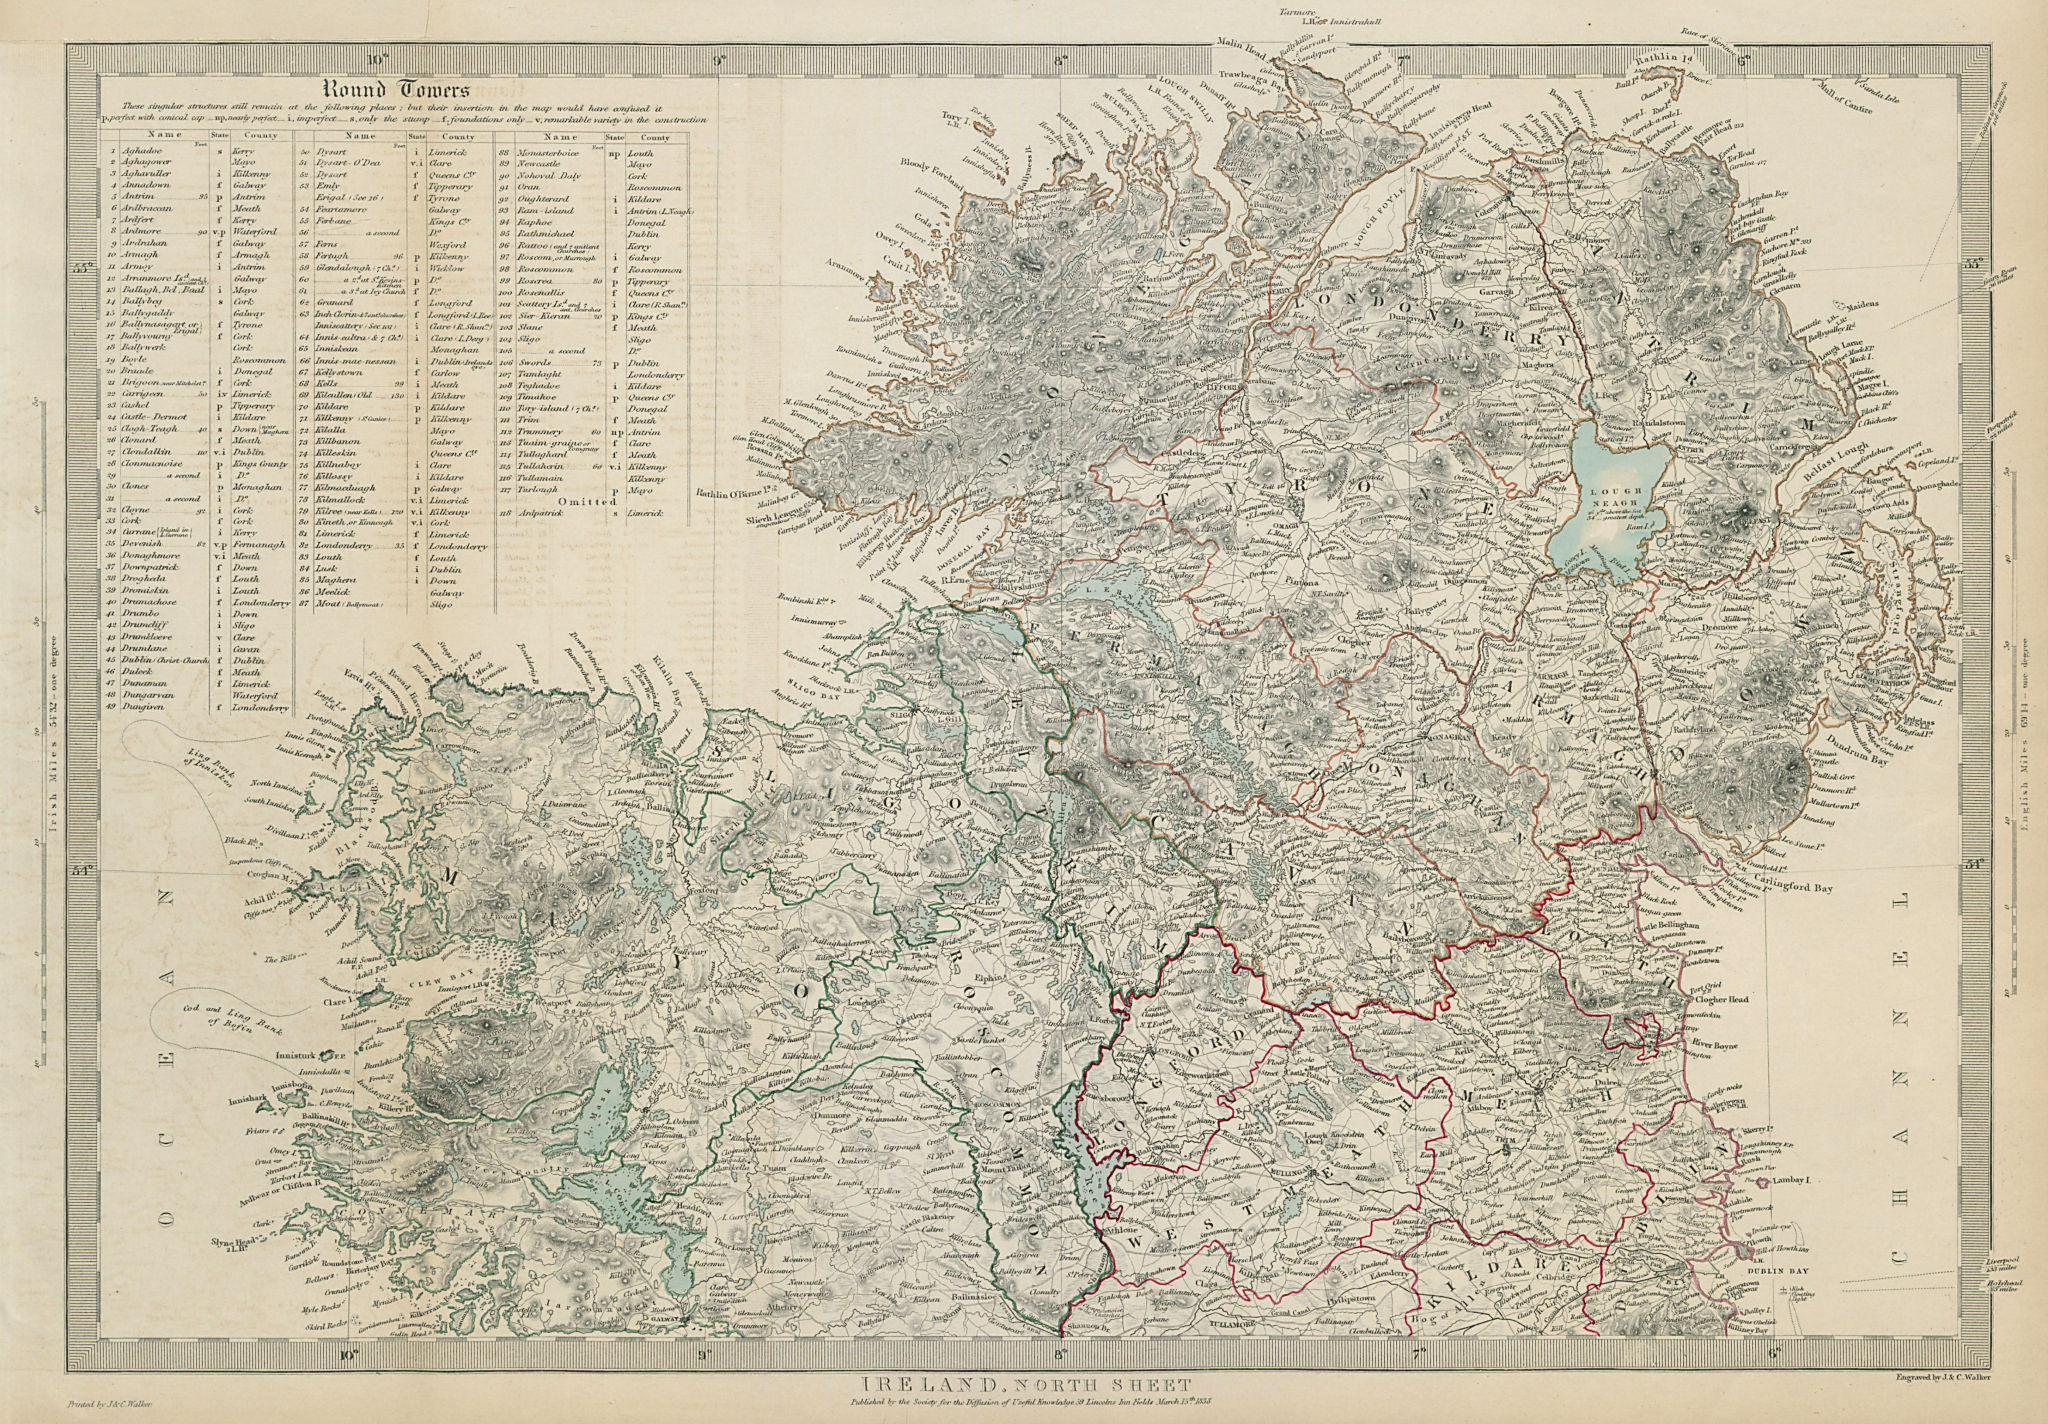 IRELAND North Sheet. Cloigtheach Cloigthithe. List of round towers SDUK 1844 map